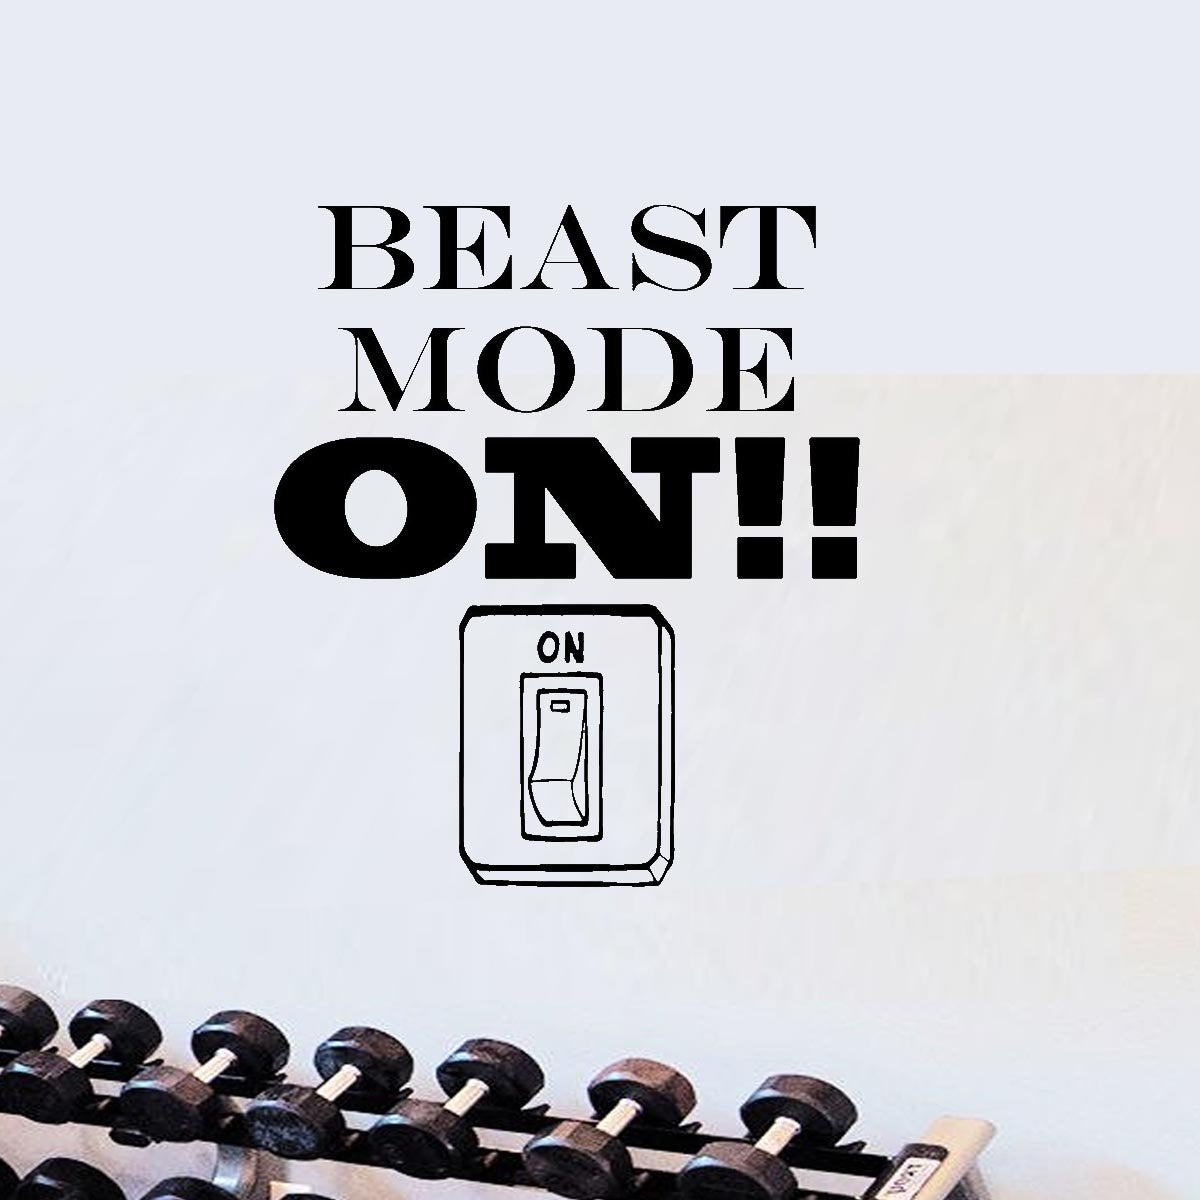 VWAQ Beast Mode On! Motivational Quotes Decal Wall Art Fitness - VWAQ Vinyl Wall Art Quotes and Prints